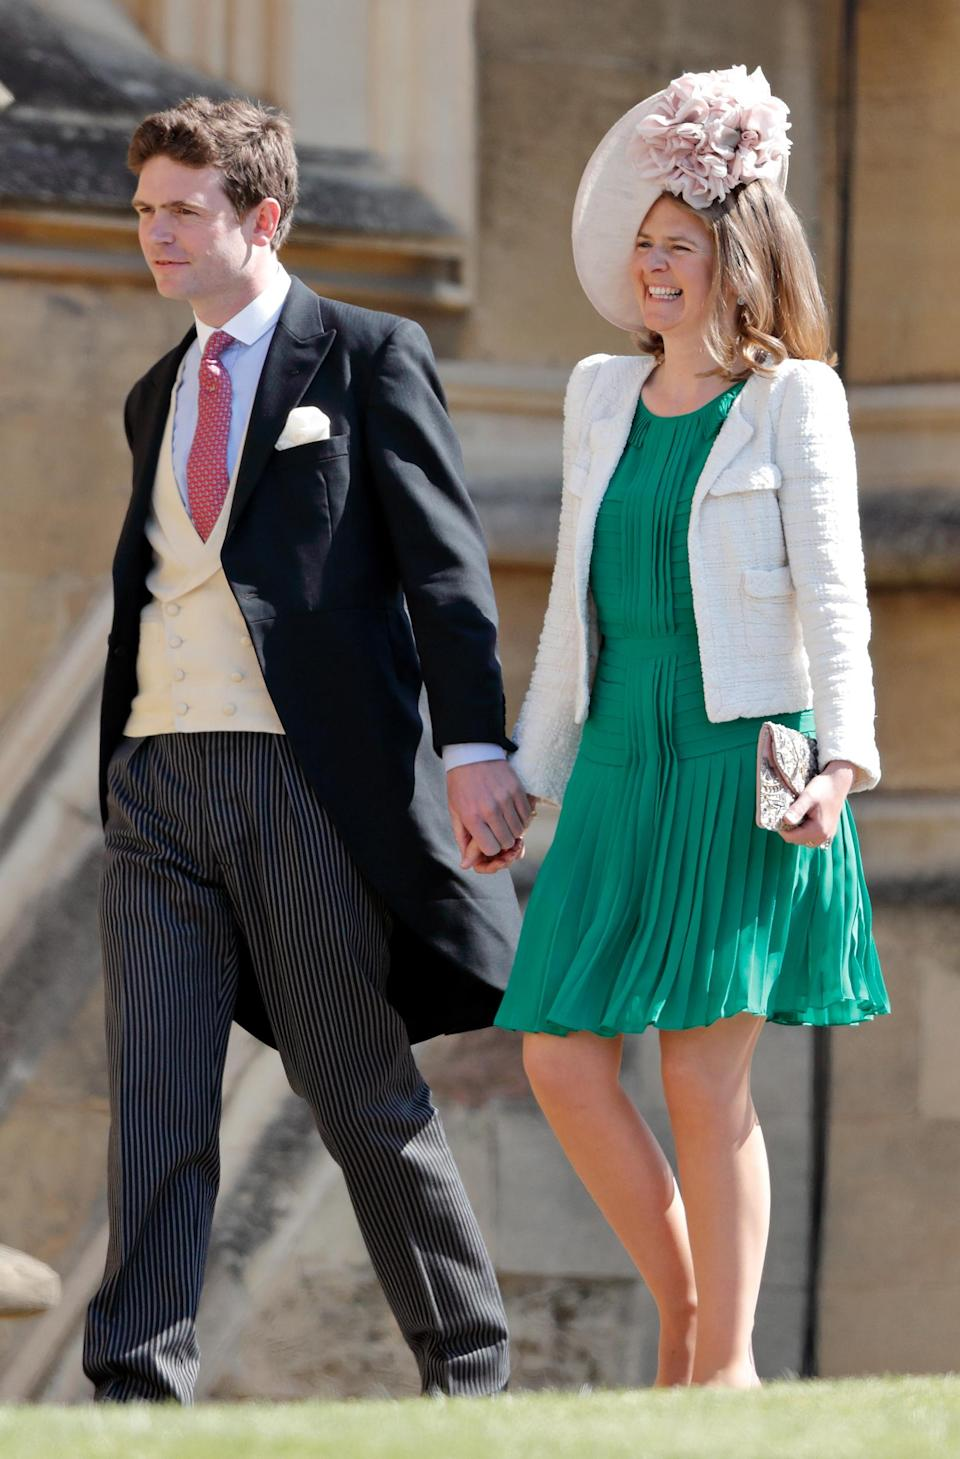 Lady Laura Meade, pictured with husband James at the 2018 royal wedding, has been named one of Prince Louis's godmothers. (Photo: Max Mumby/Indigo/Getty Images)